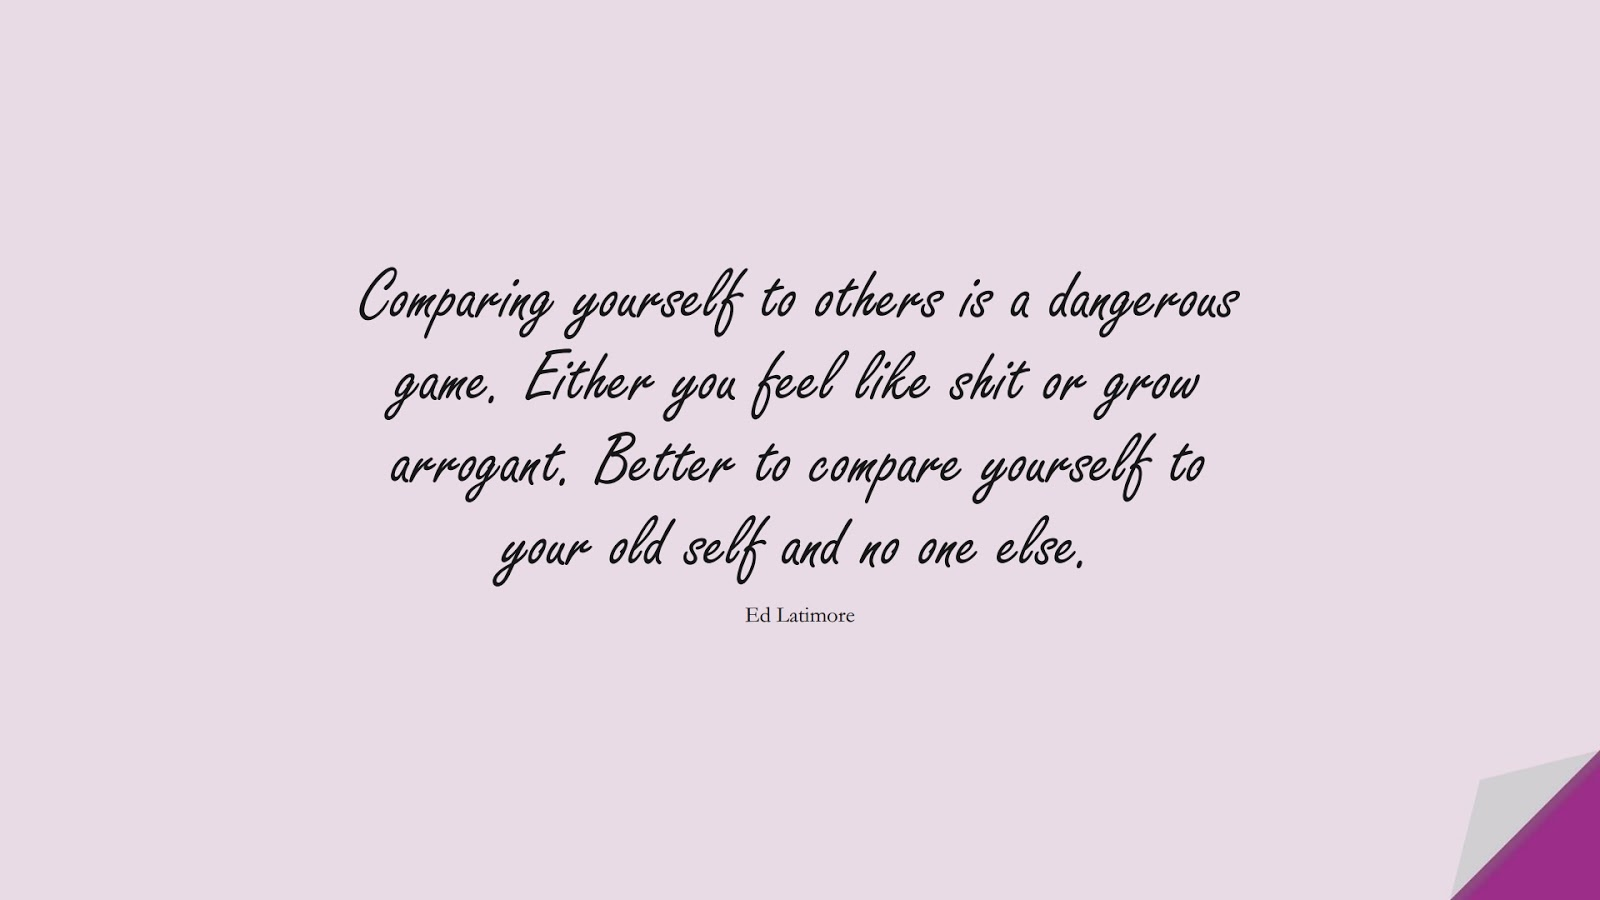 Comparing yourself to others is a dangerous game. Either you feel like shit or grow arrogant. Better to compare yourself to your old self and no one else. (Ed Latimore);  #RelationshipQuotes